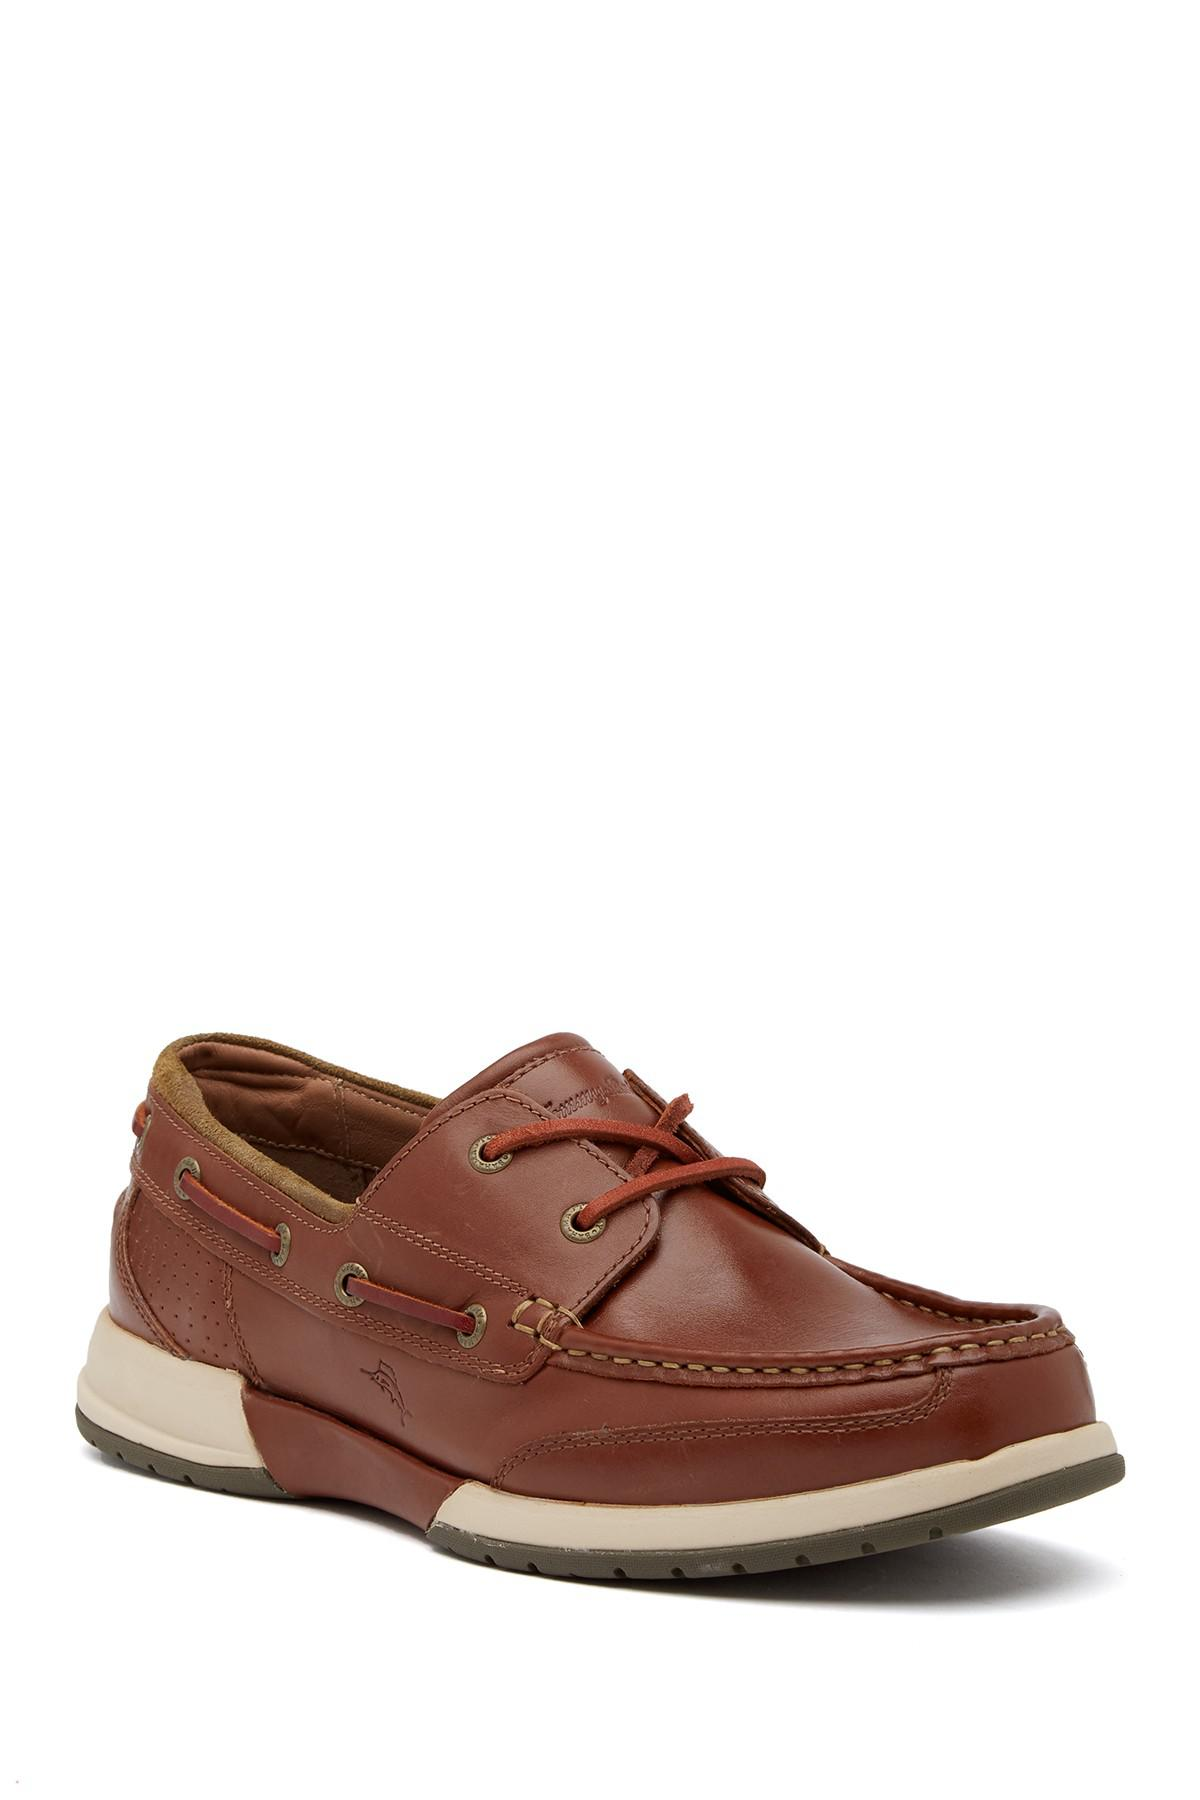 Tommy Bahama. Men's Brown Land Rover Boat Shoe